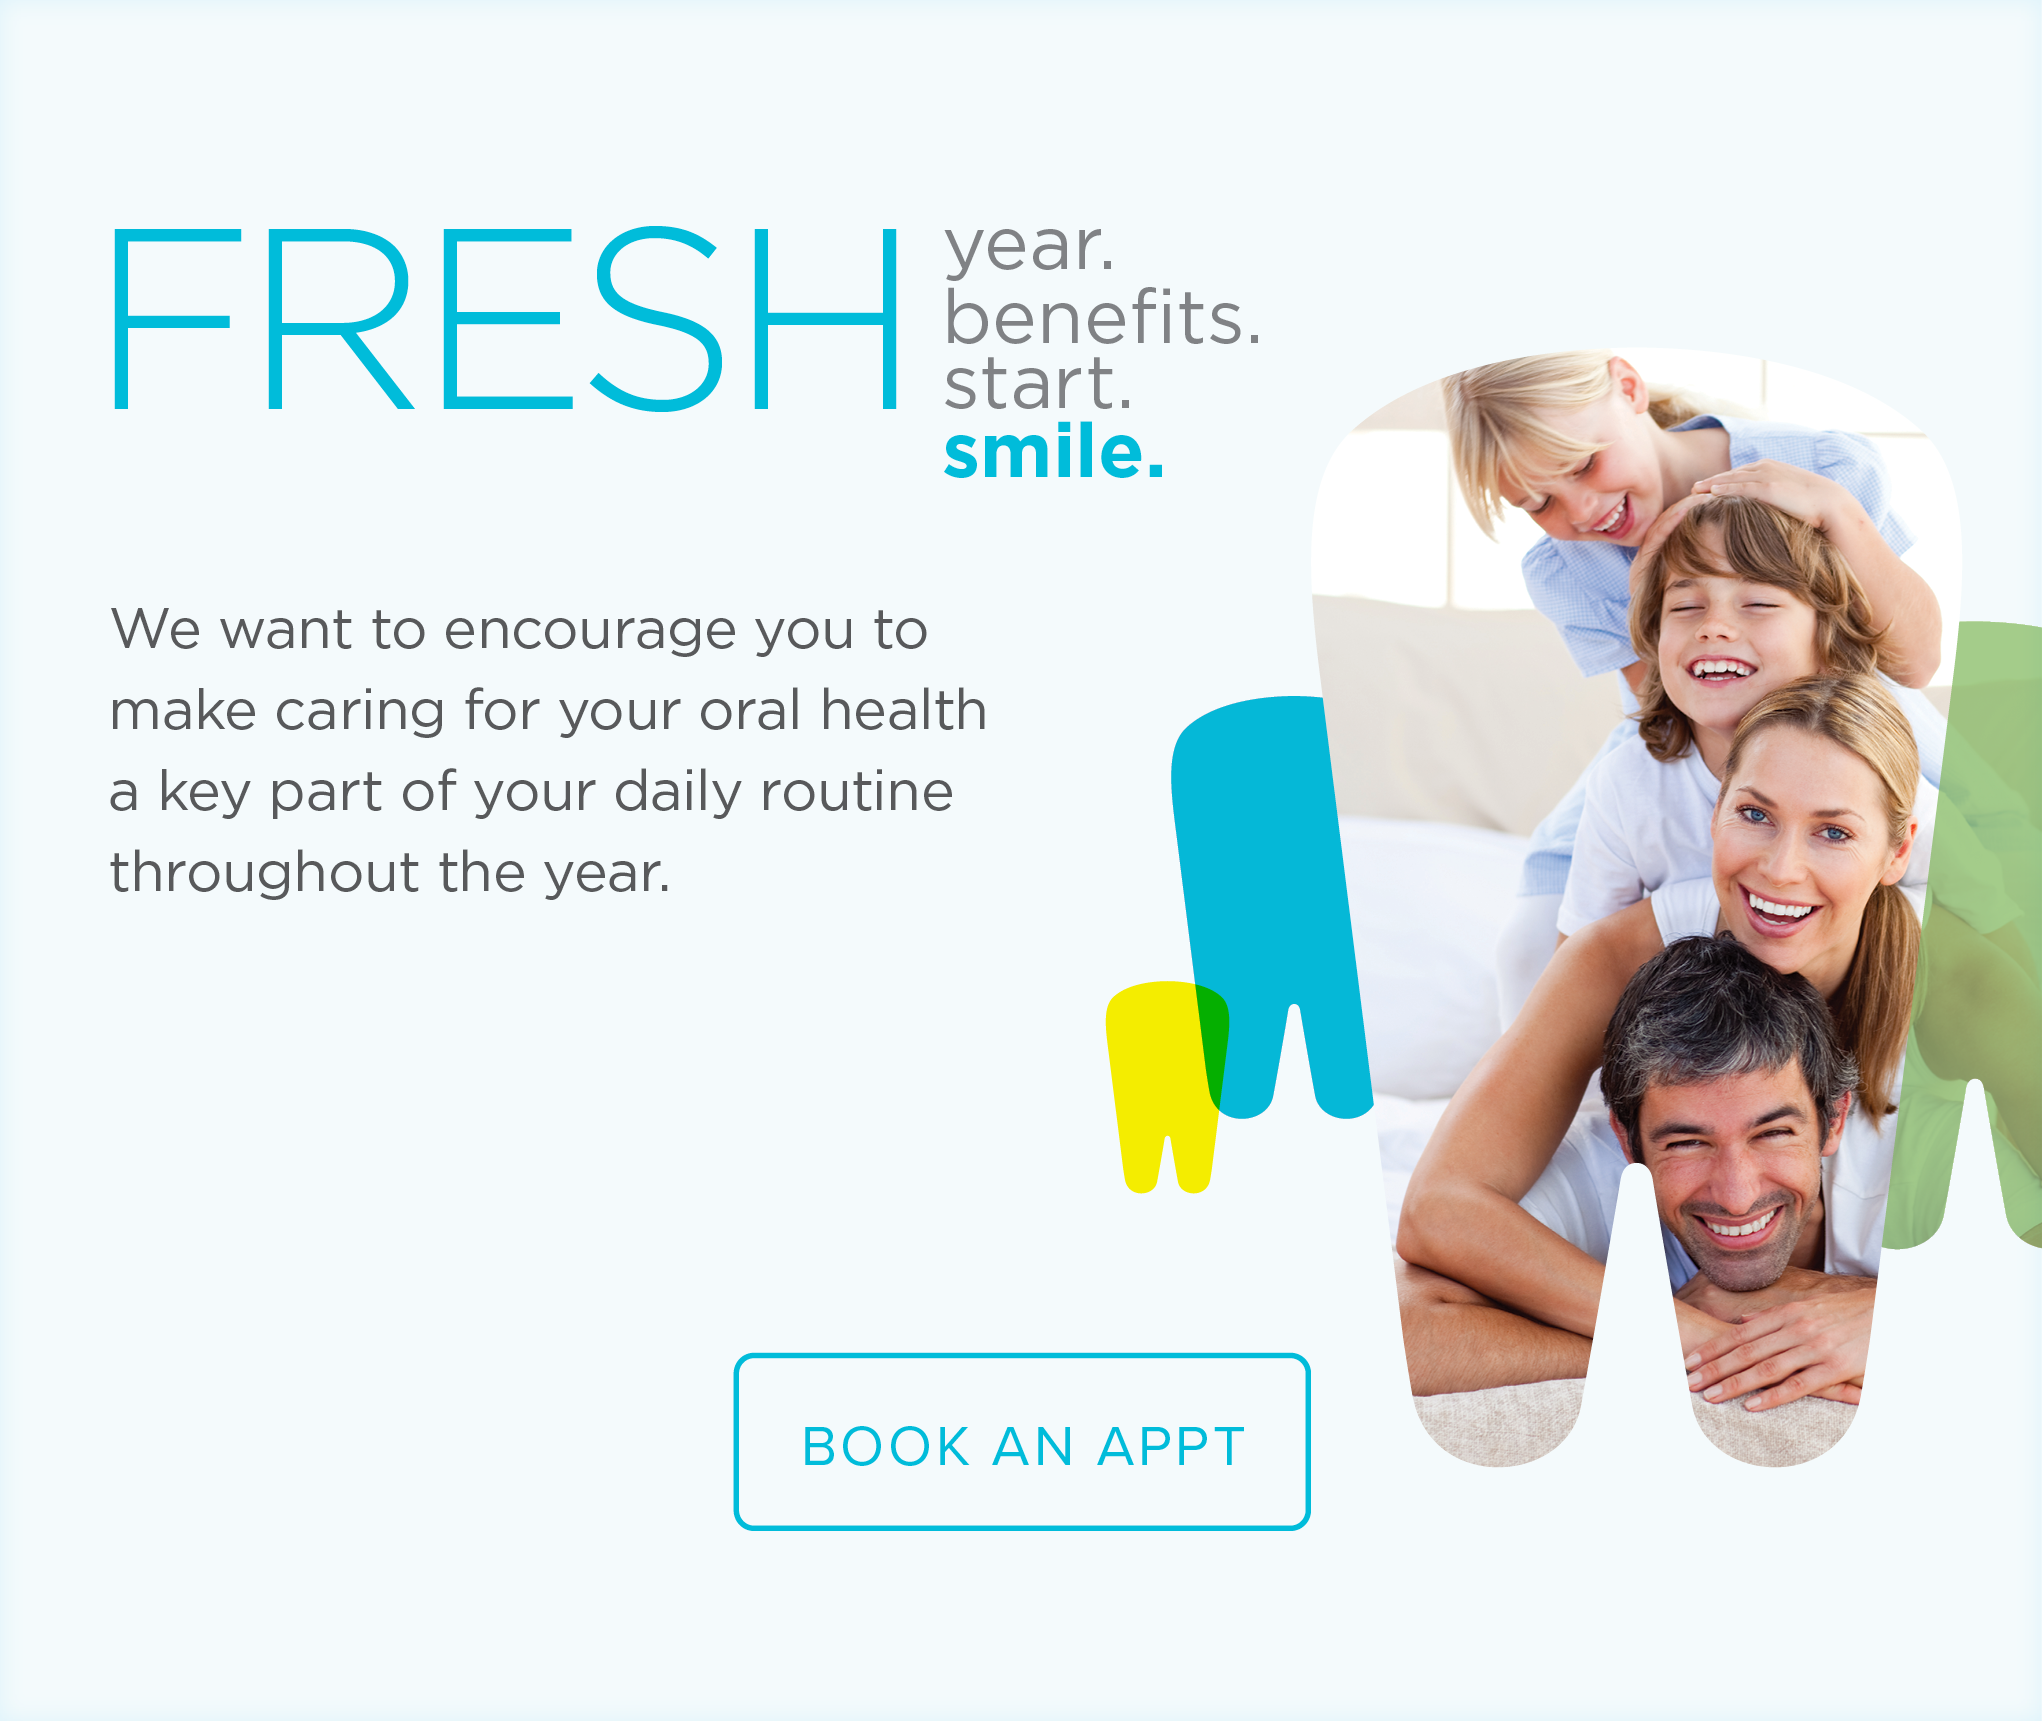 Bernardo Heights Dental Group - Make the Most of Your Benefits